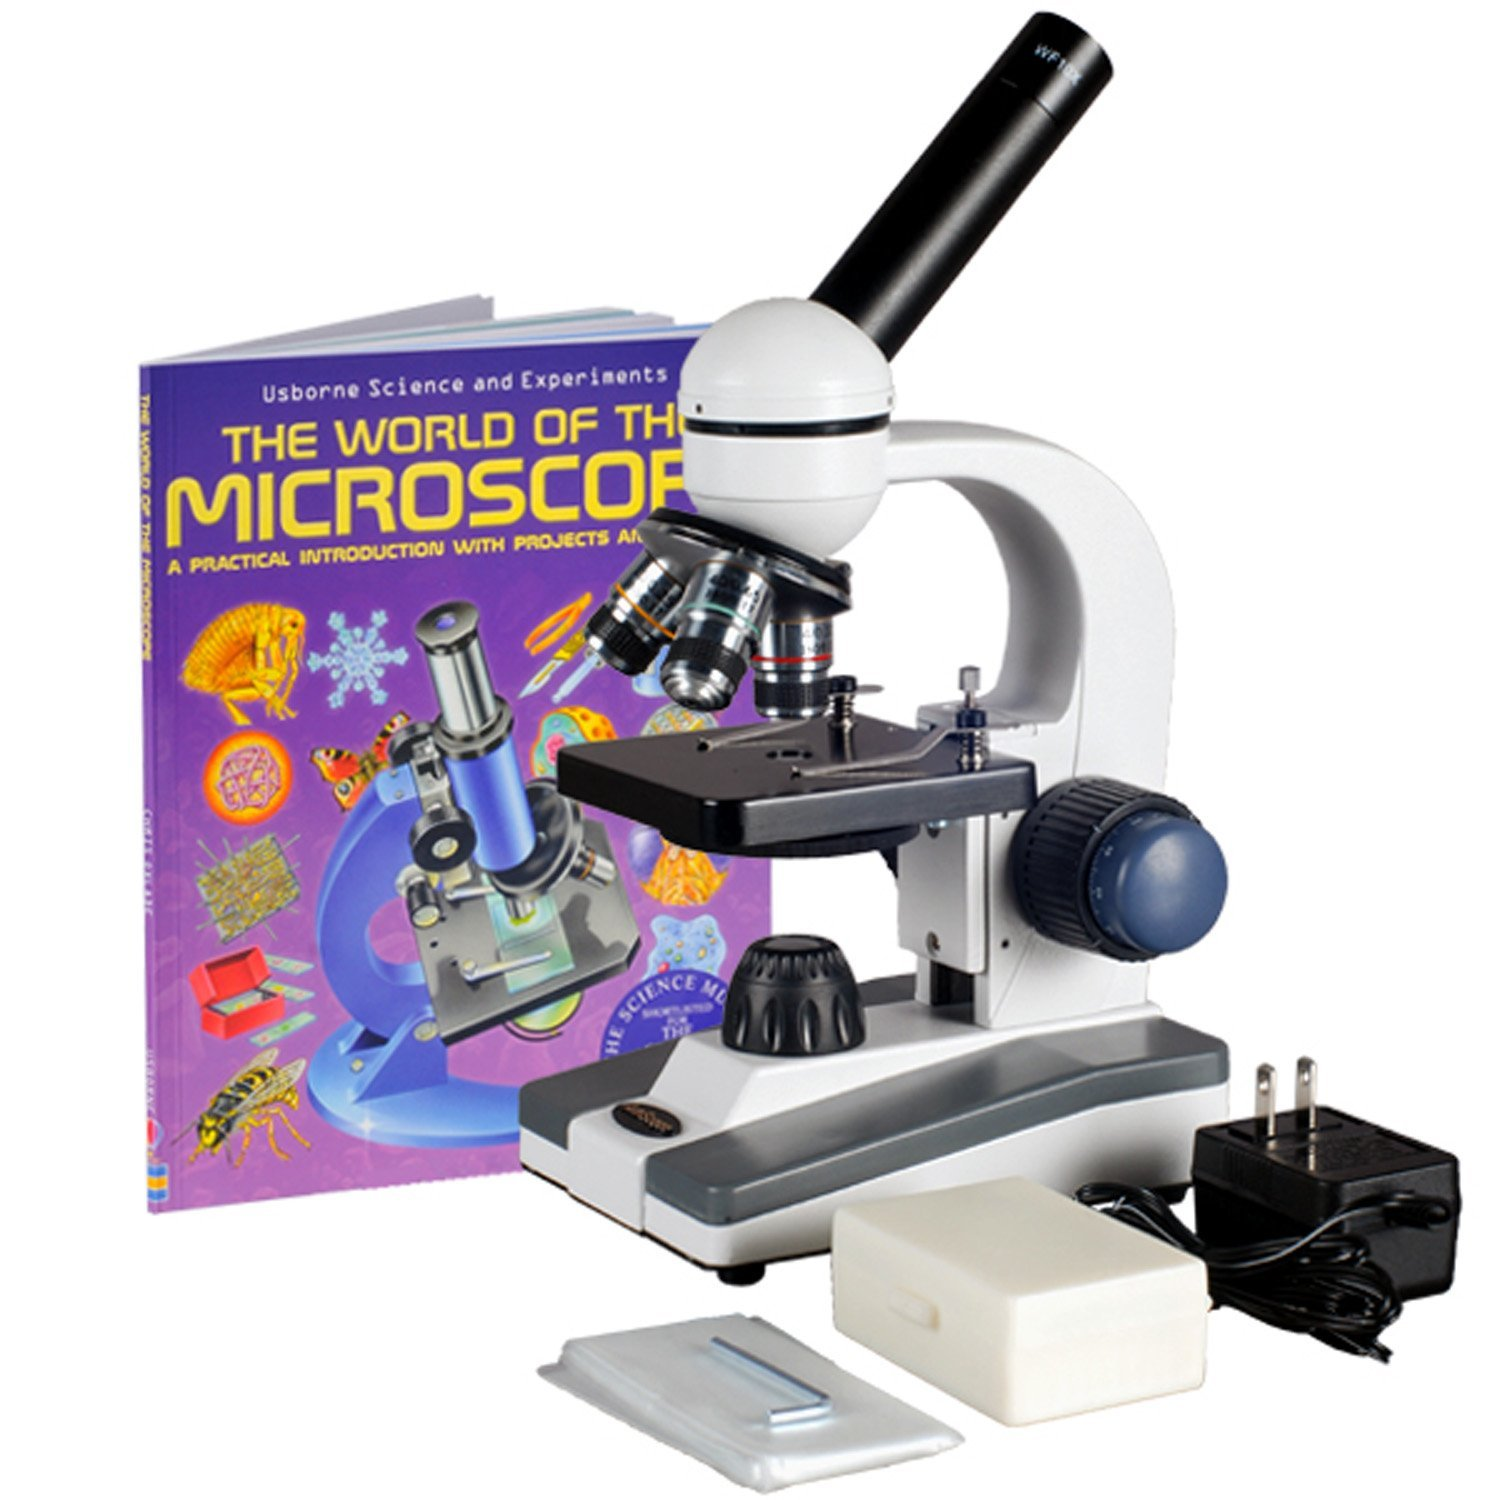 AmScope B450-3MP 40X-1000X Advanced Compound Microscope with Built-in 3MP Camera and Reversed Nosepiece